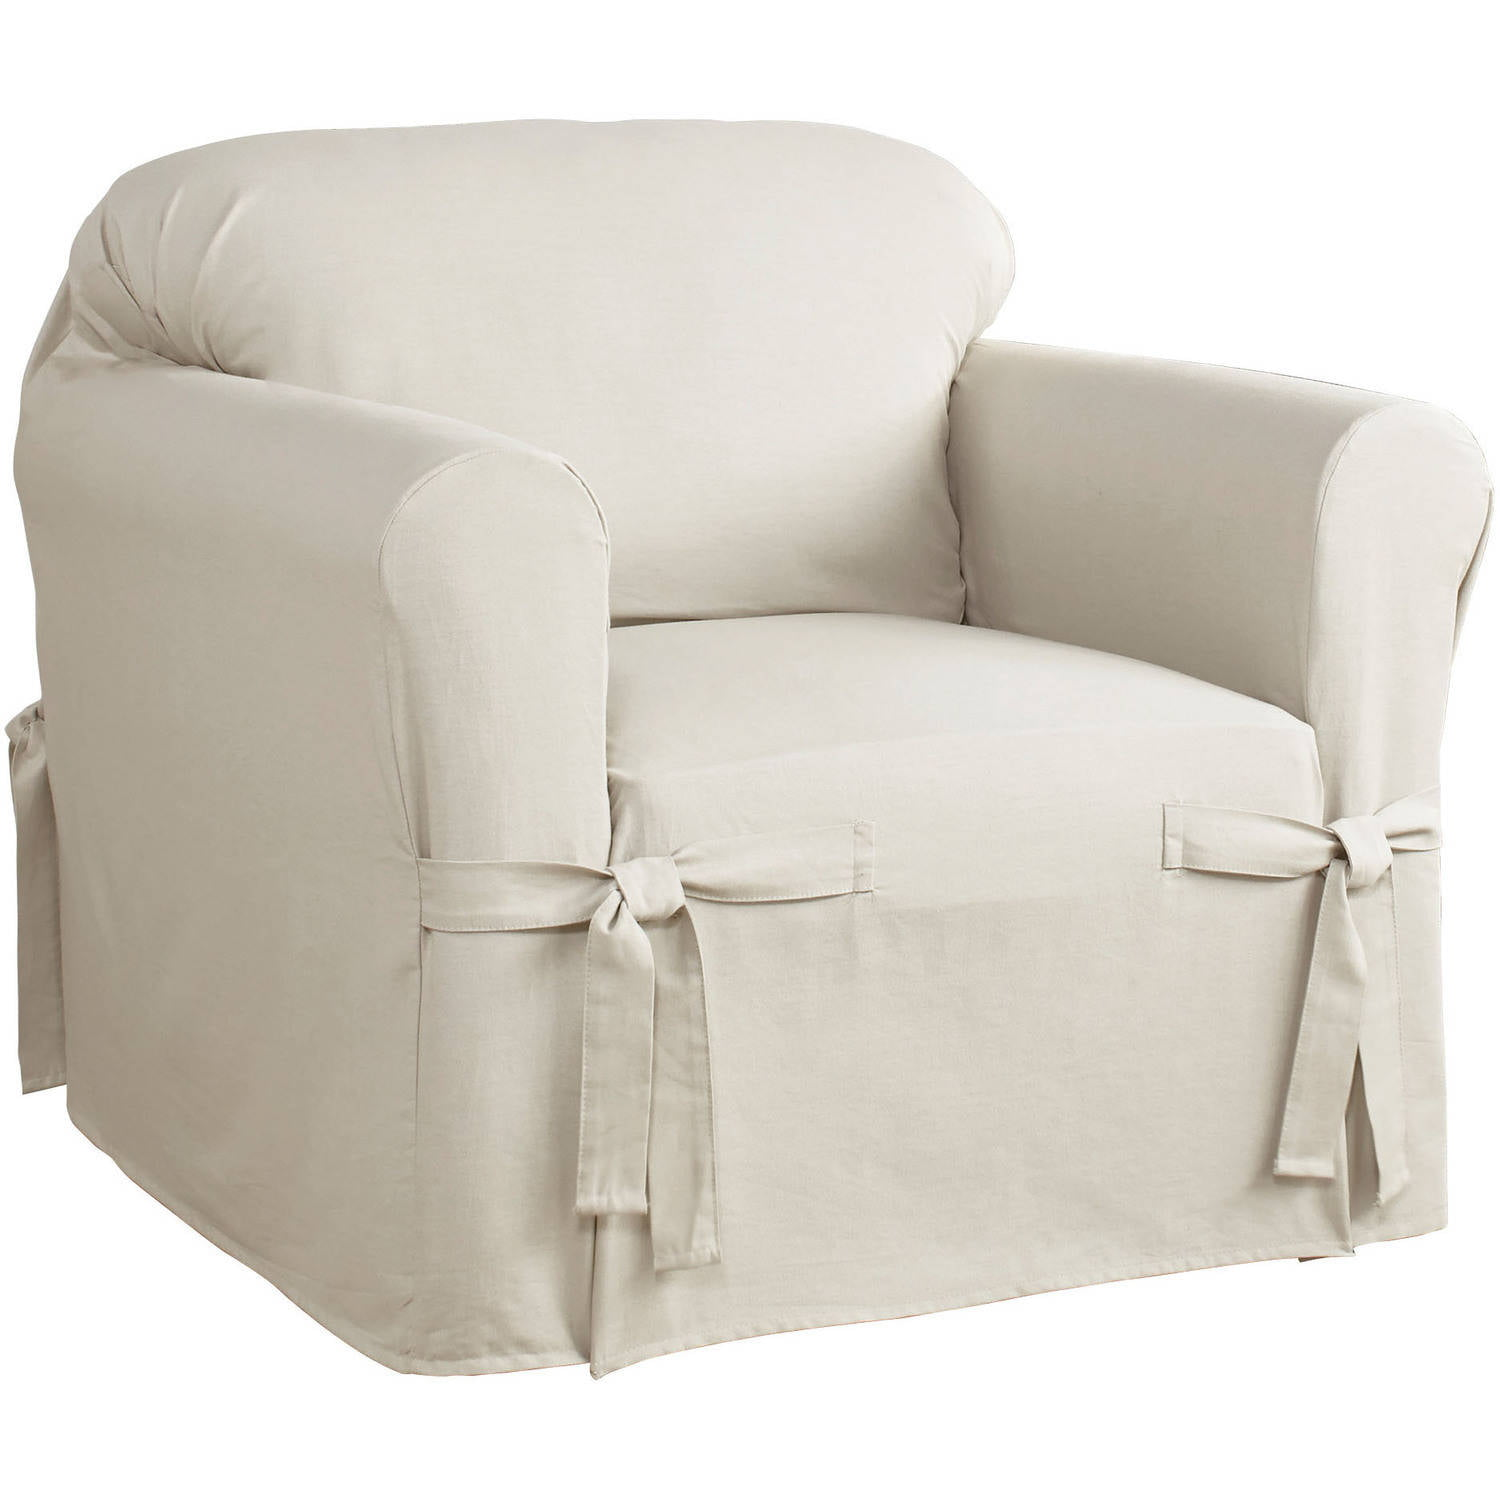 Serta Relaxed Fit Cotton Duck Furniture Slipcover Chair 1 Piece